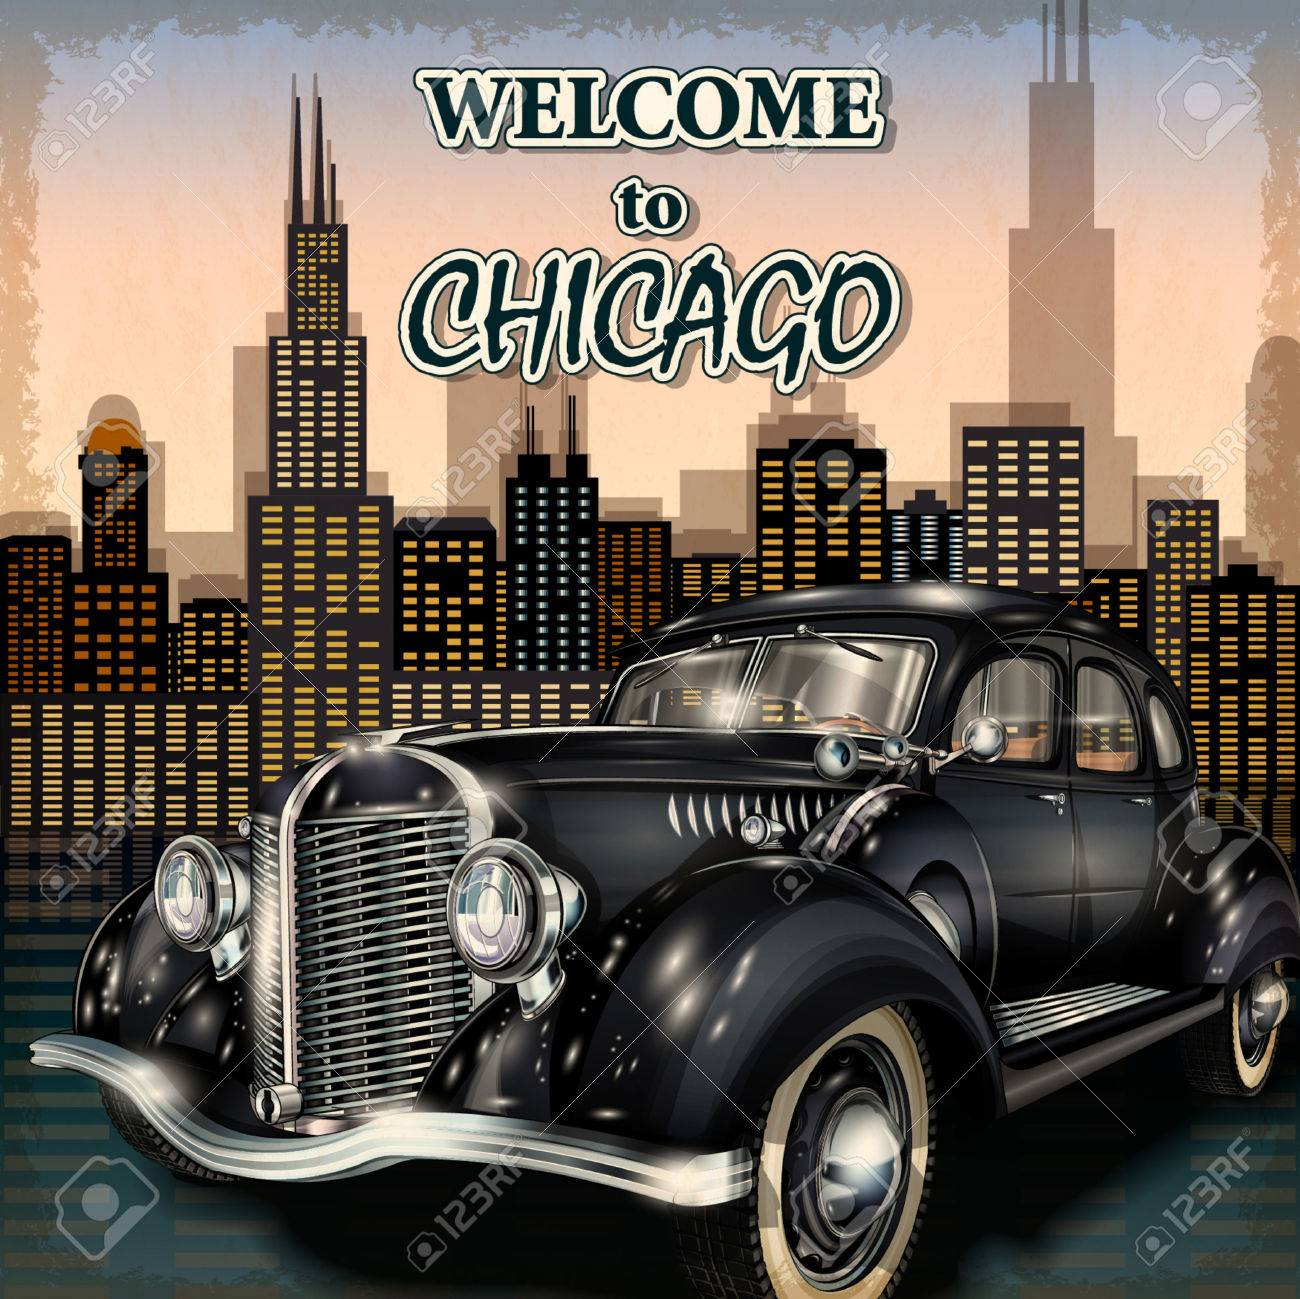 Welcome to Chicago retro poster. - 50494405